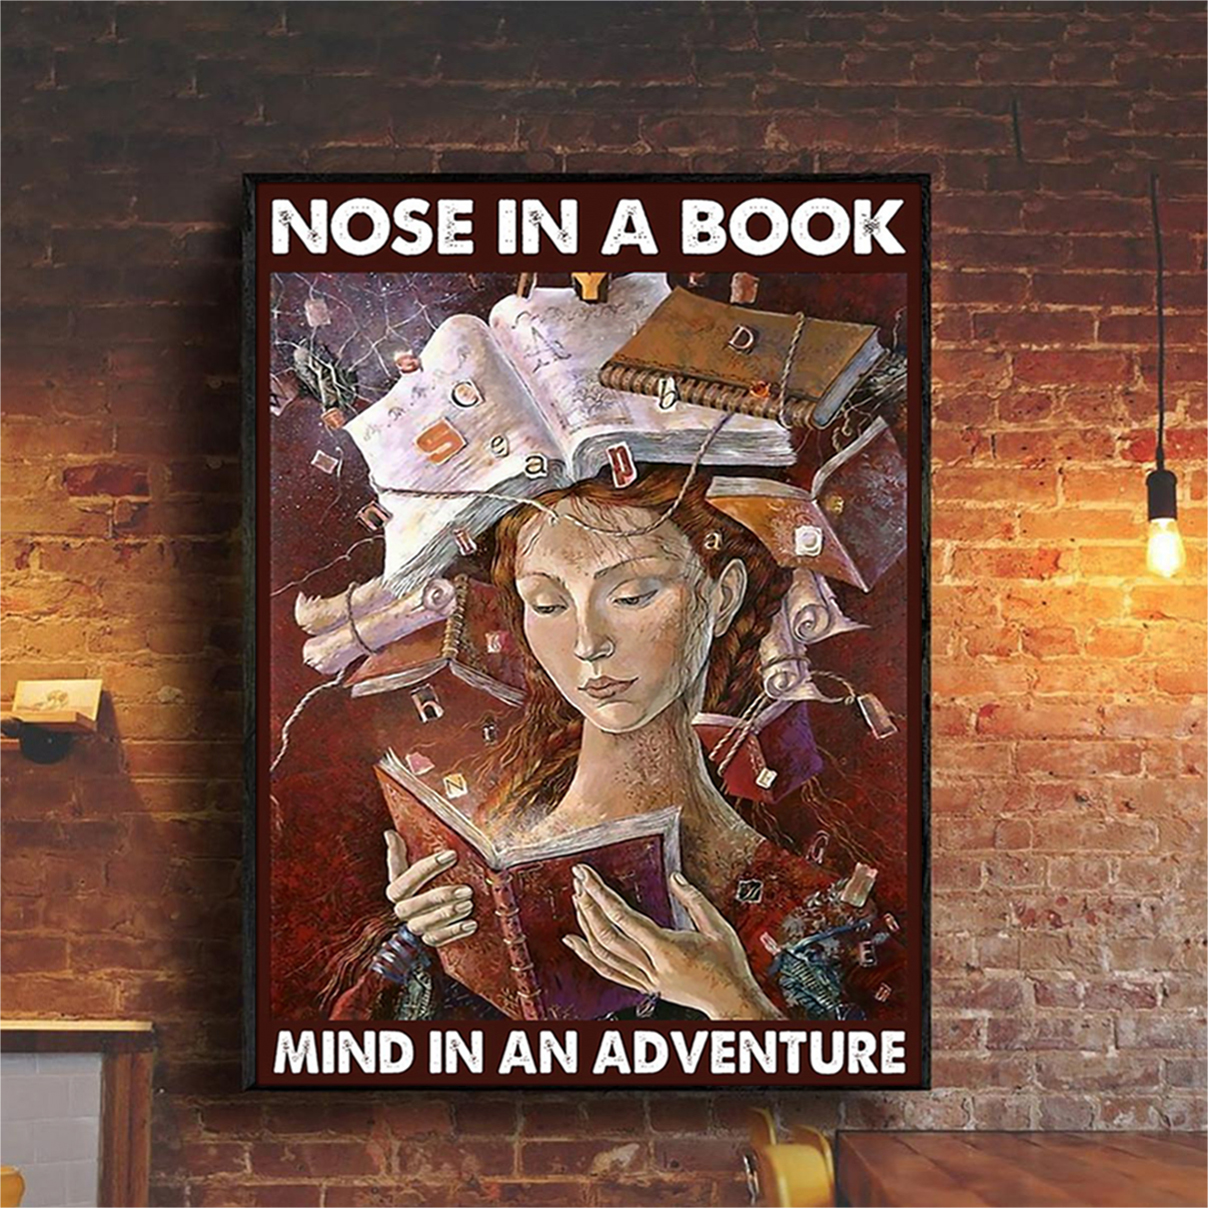 Nose in a book mind in an adventure poster A1